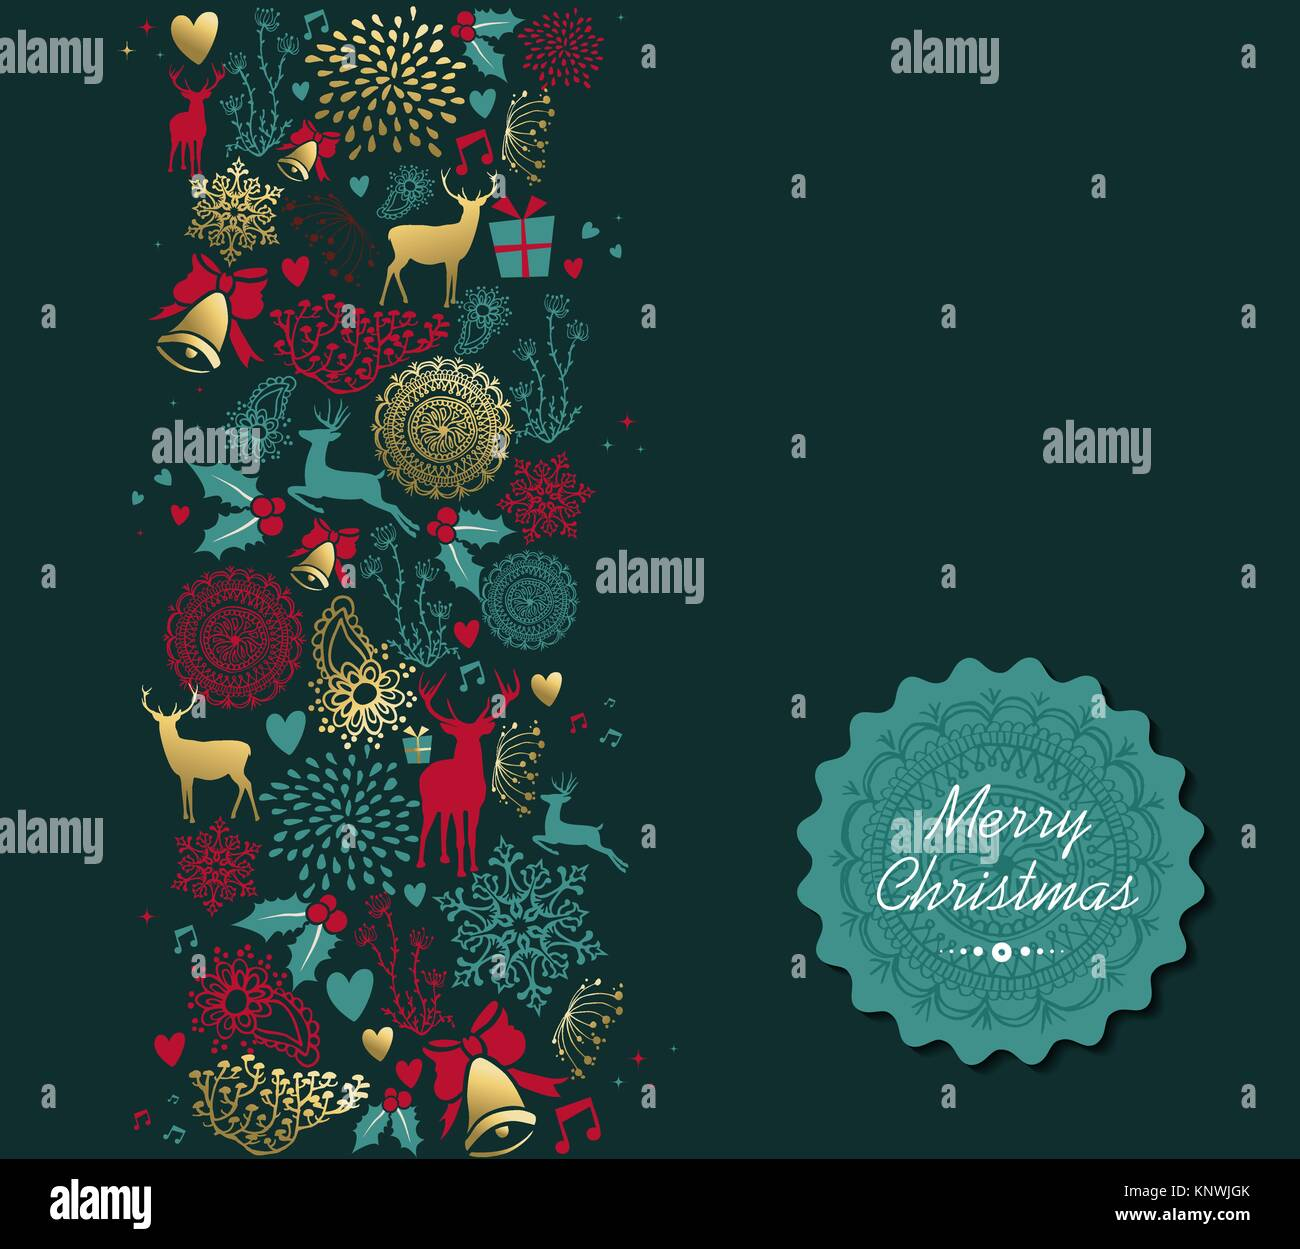 merry christmas vintage golden seamless pattern background with deer KNWJGK